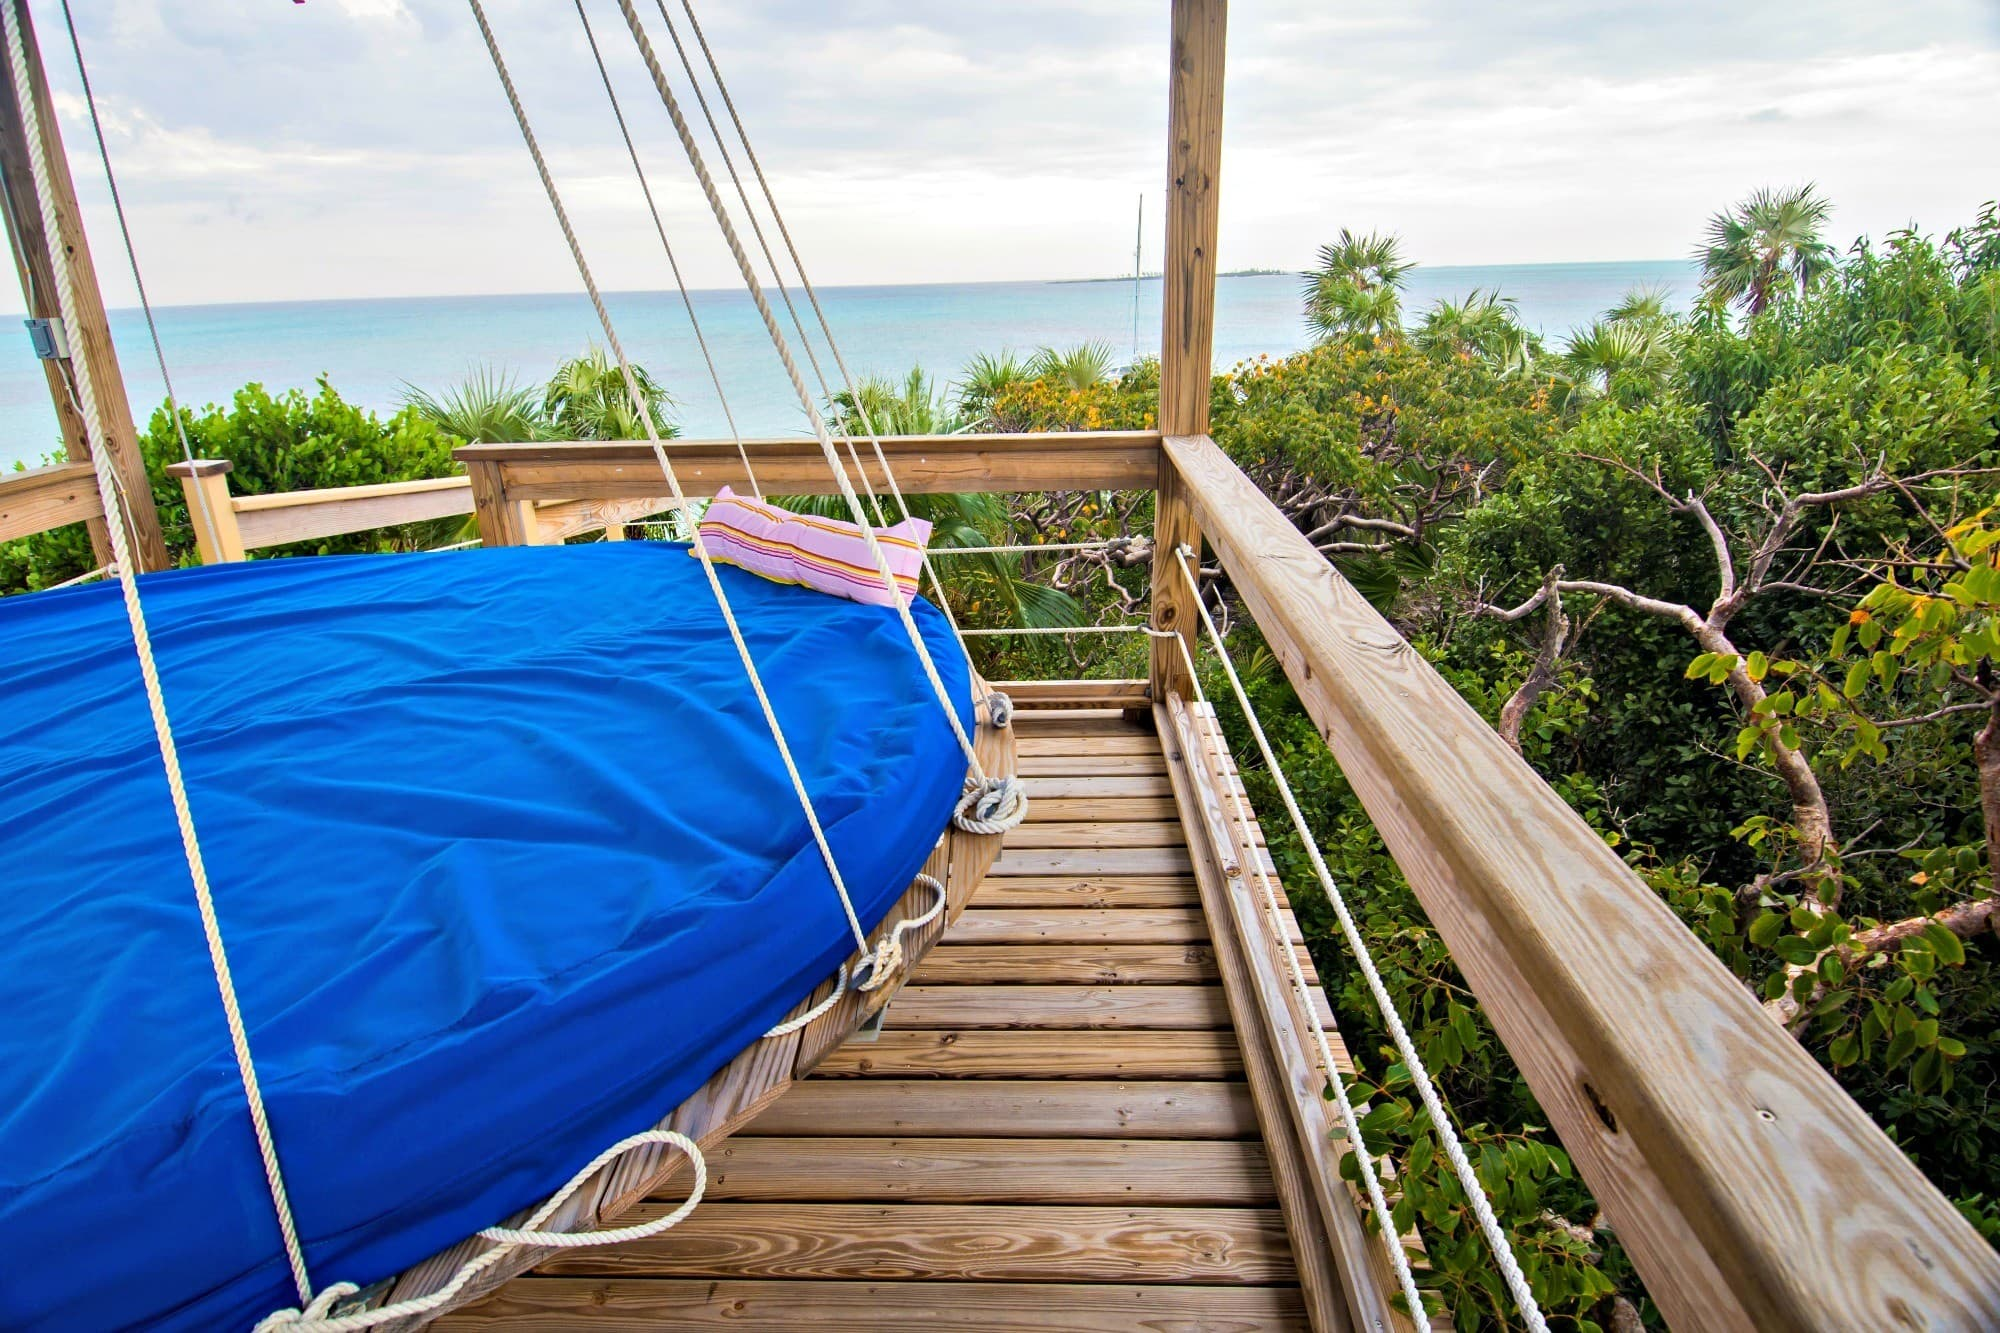 Wouldn't you like to hang out on a king-sized swing bed for a few hours at Sandy Toes Bahamas?